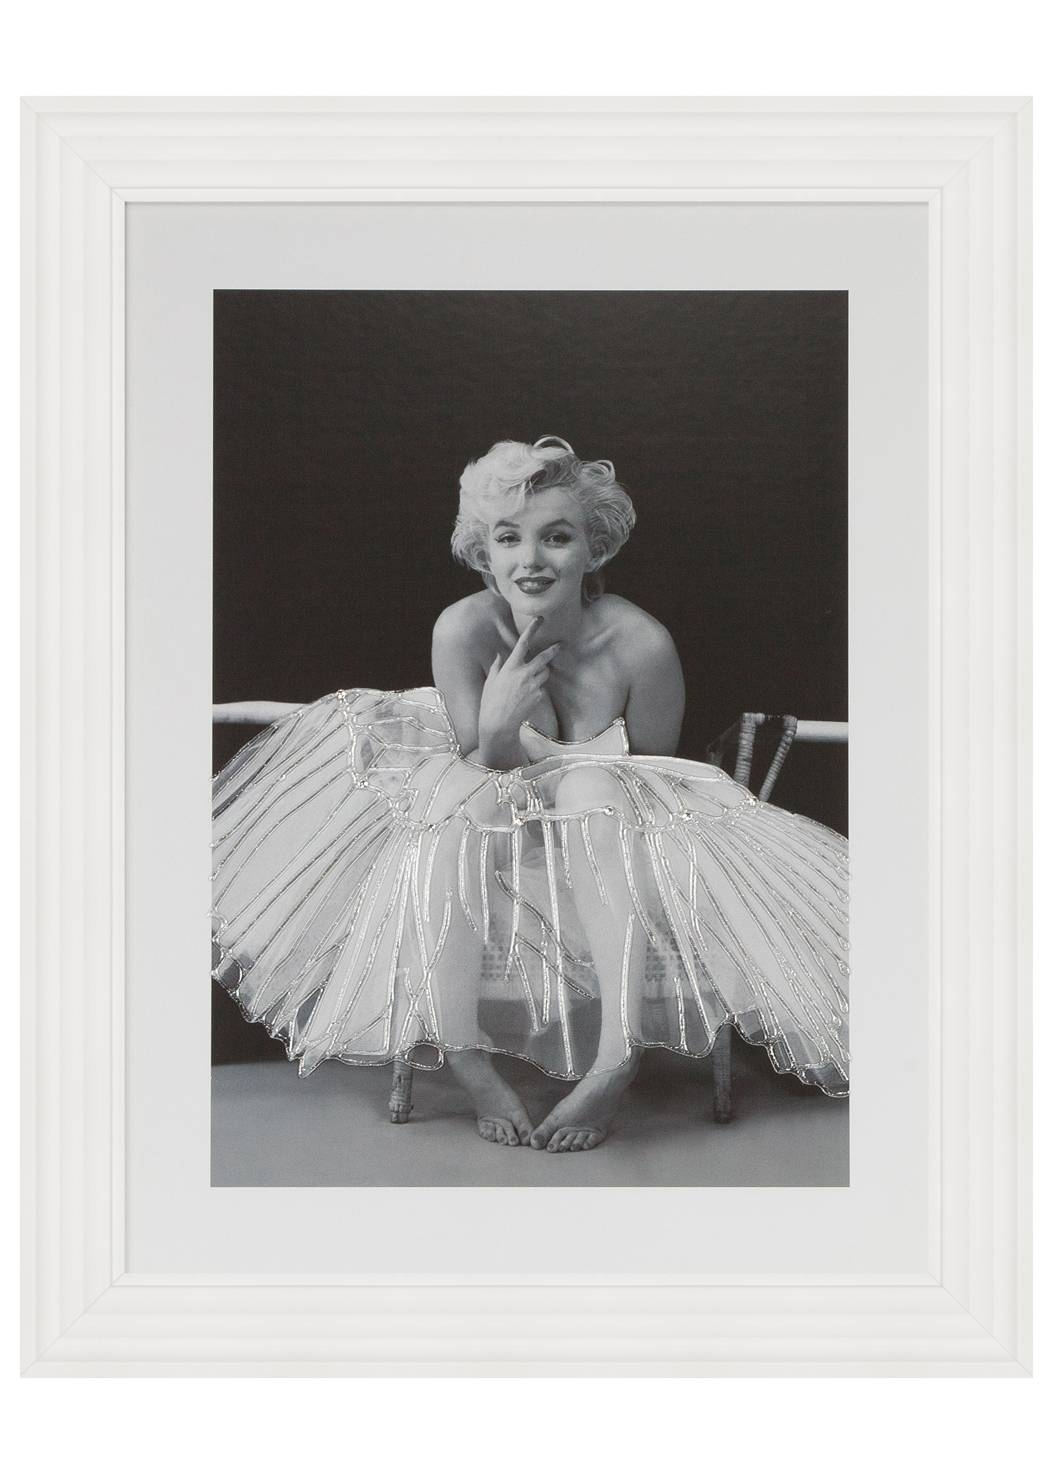 Marilyn Monroe Picture Frames Gallery – Craft Decoration Ideas With Regard To 2018 Marilyn Monroe Framed Wall Art (View 15 of 22)